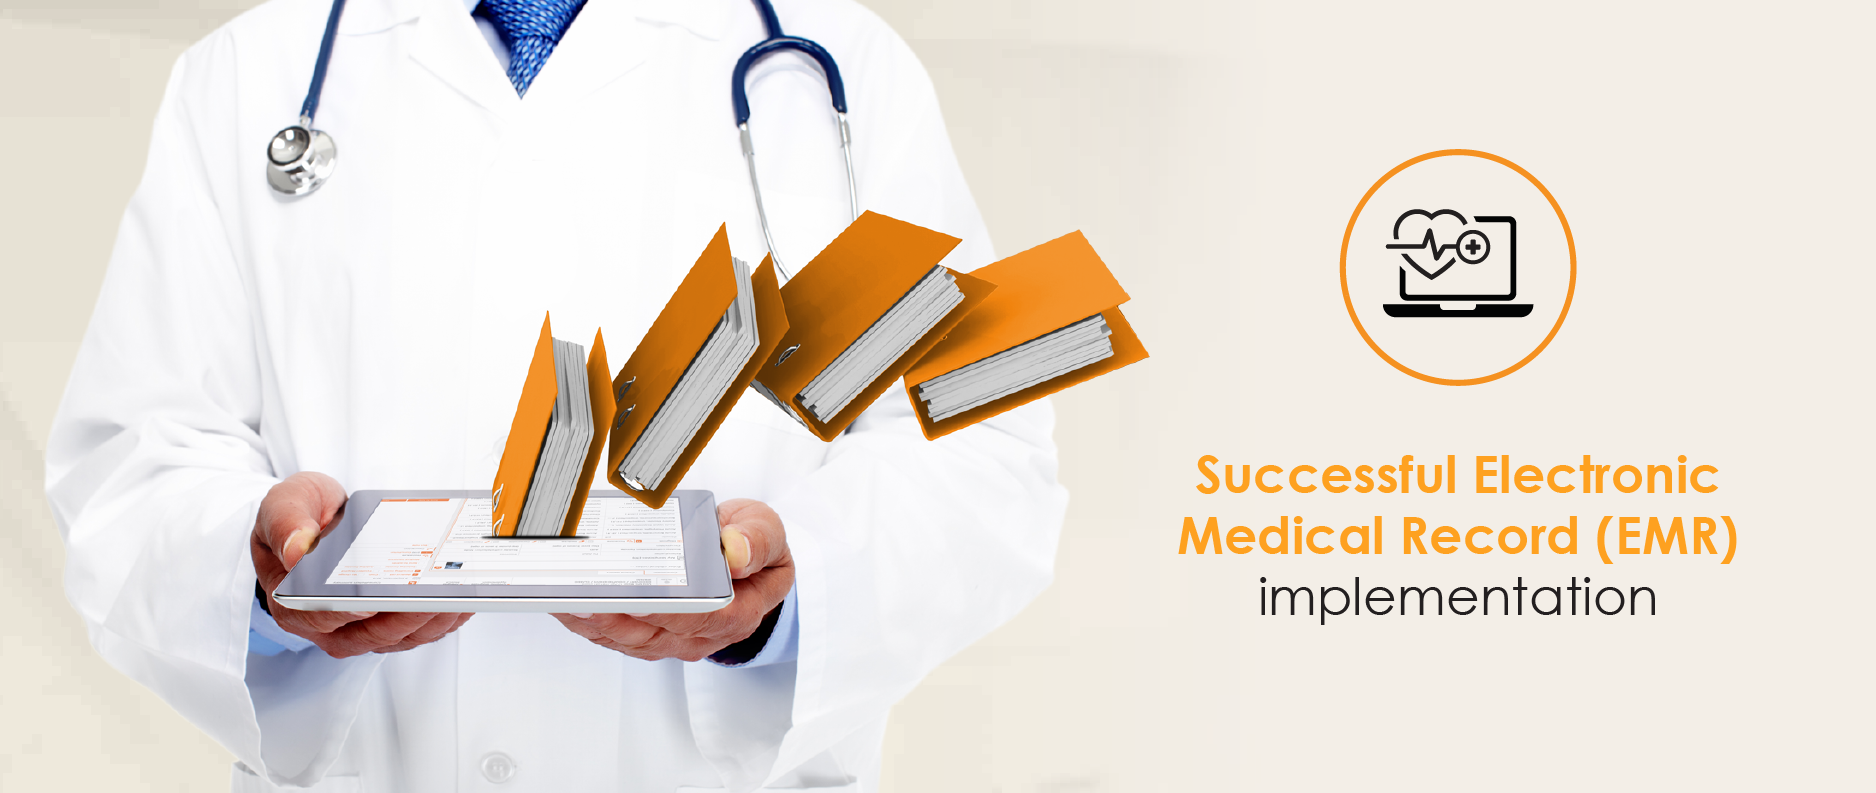 Successful Electronic Medical Record (EMR) implementation